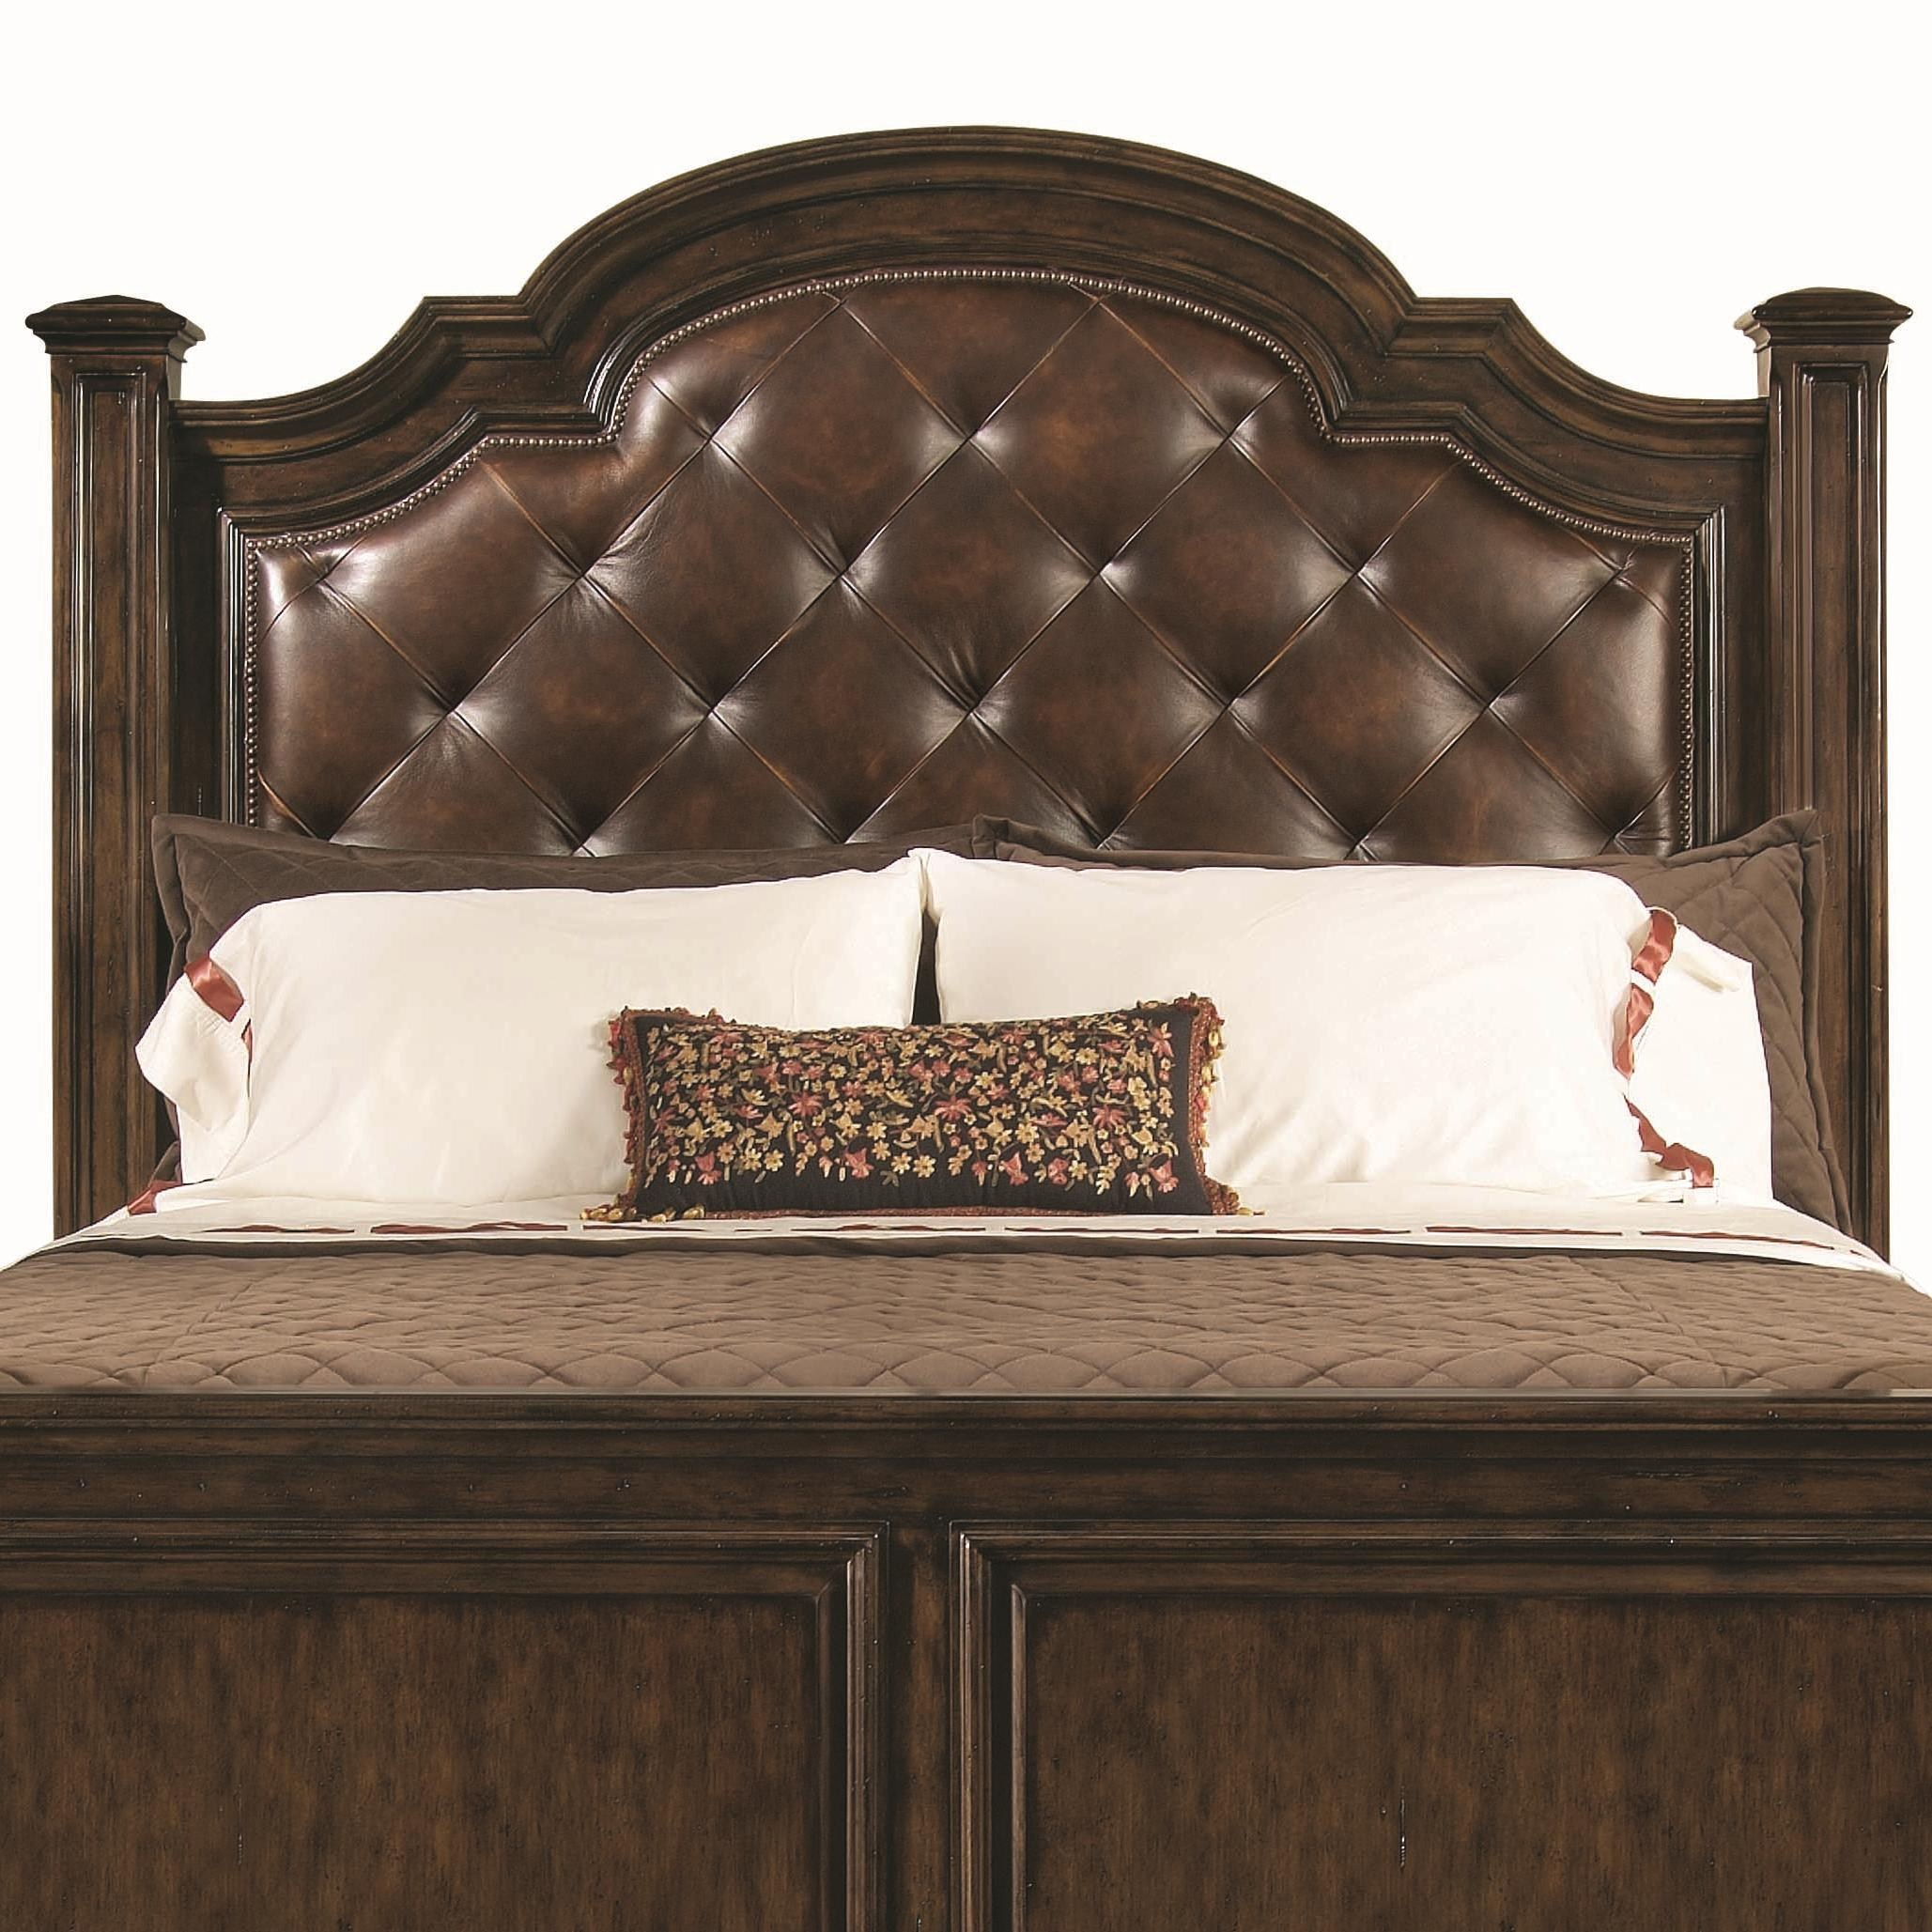 Cozy Bernhardt Normandie Manor Queen-Size Button-Tufted Leather Upholstered  Headboard with Nailhead Trim leather upholstered headboard